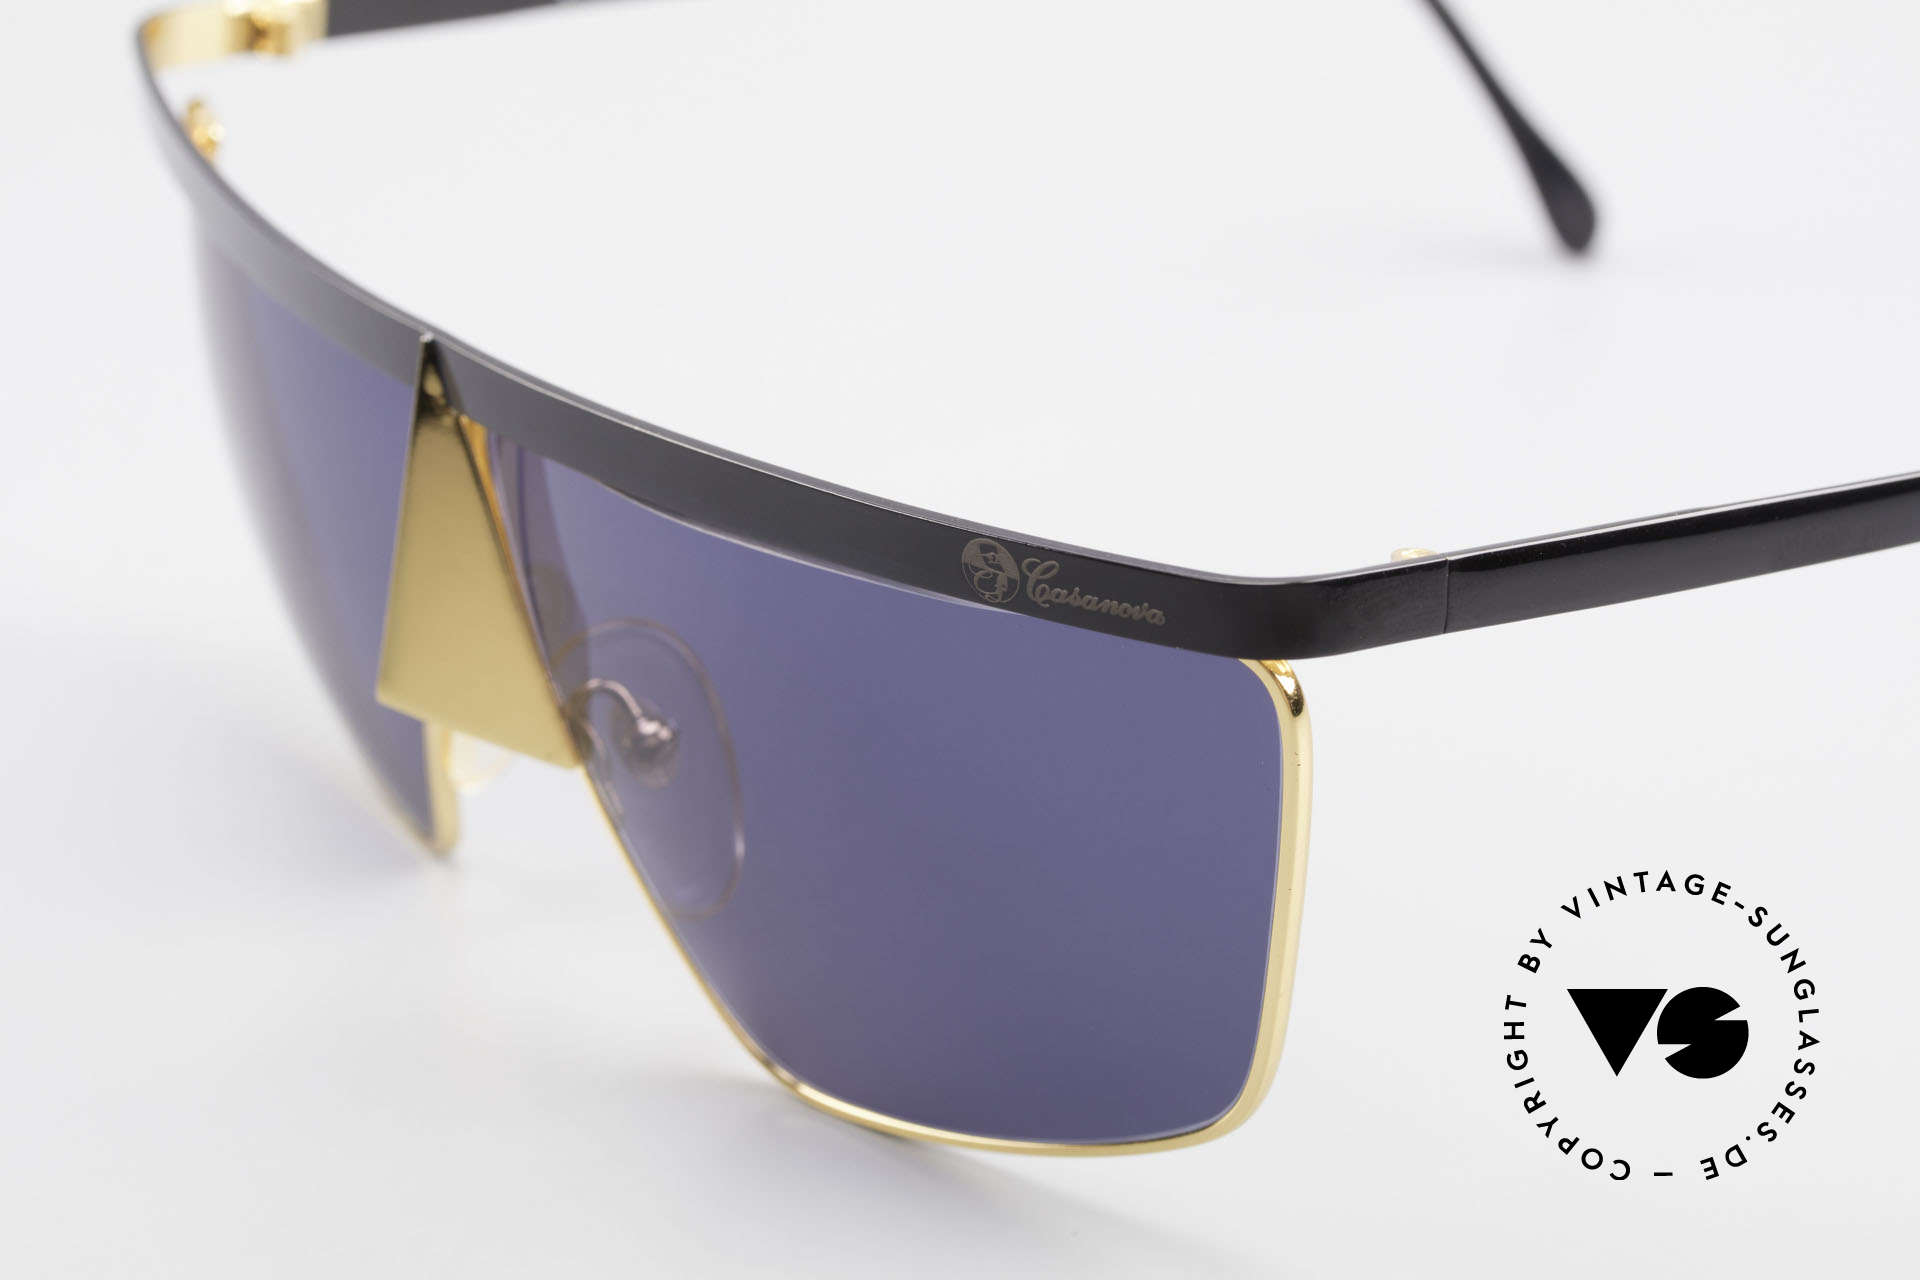 Casanova FC10 24kt Noseguard Sunglasses, metal frame is shaped like a mysterious carnival mask, Made for Men and Women